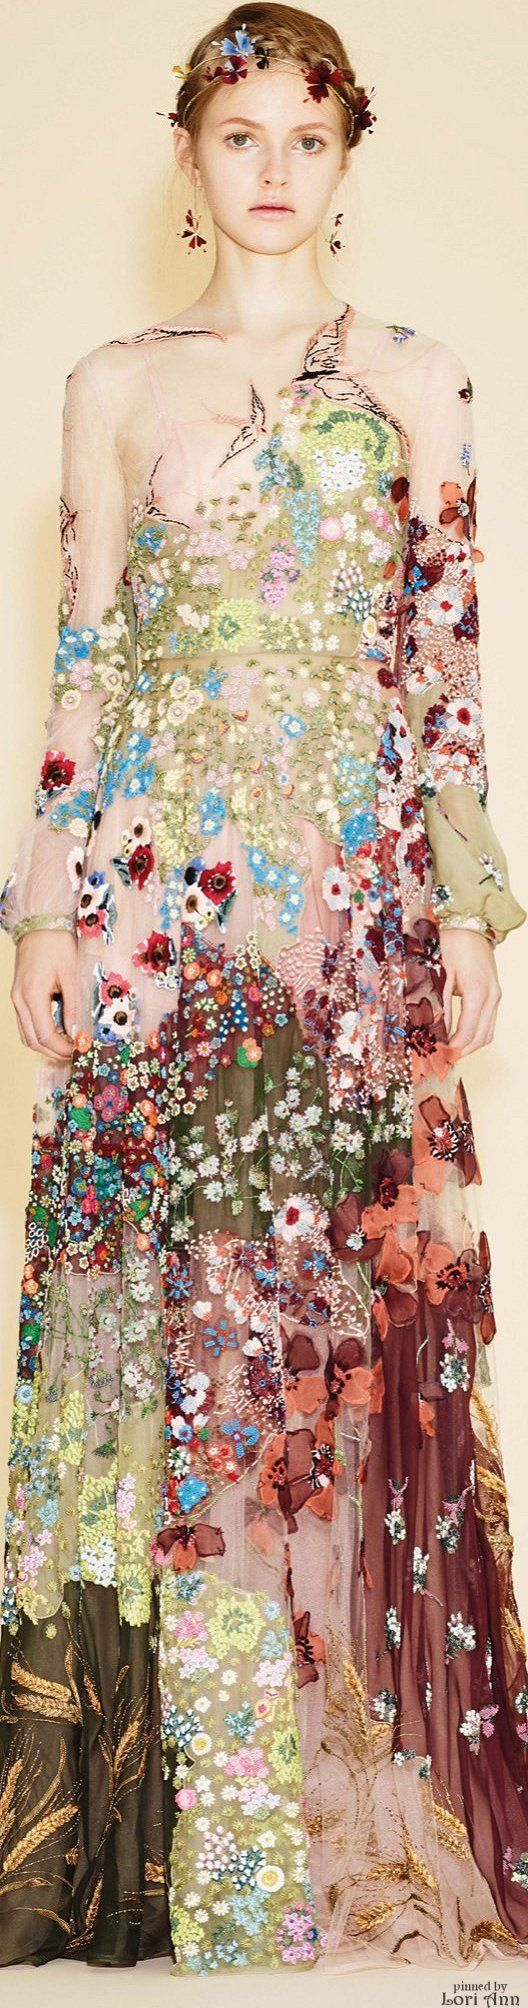 the textures and patchwork effects are very interesting - the bird and flower stitch work is lovely